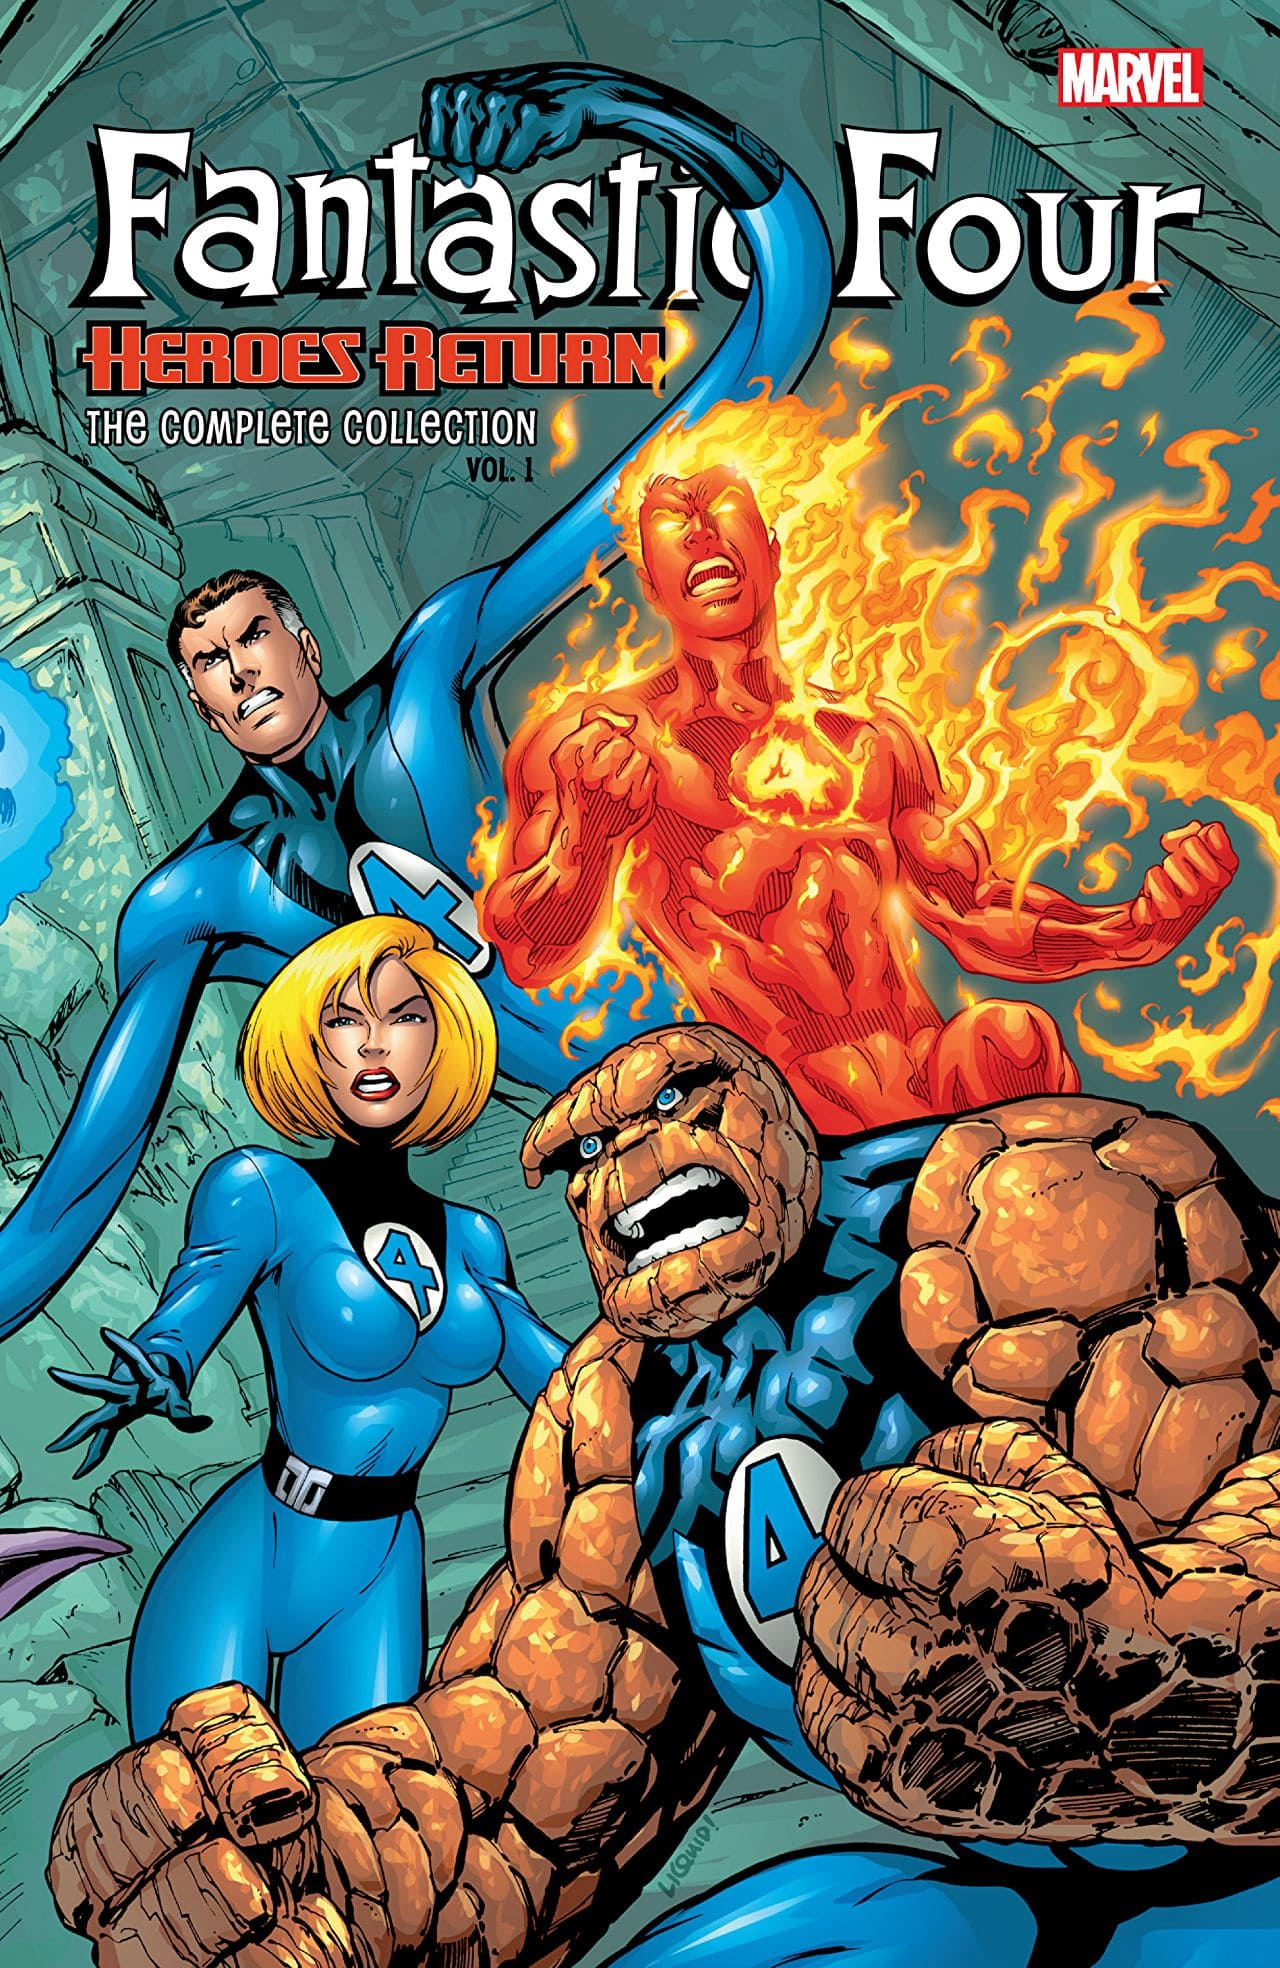 Fantastic Four: Heroes Return: The Complete Collection Volume One: A collection of classic with a splash of the future.